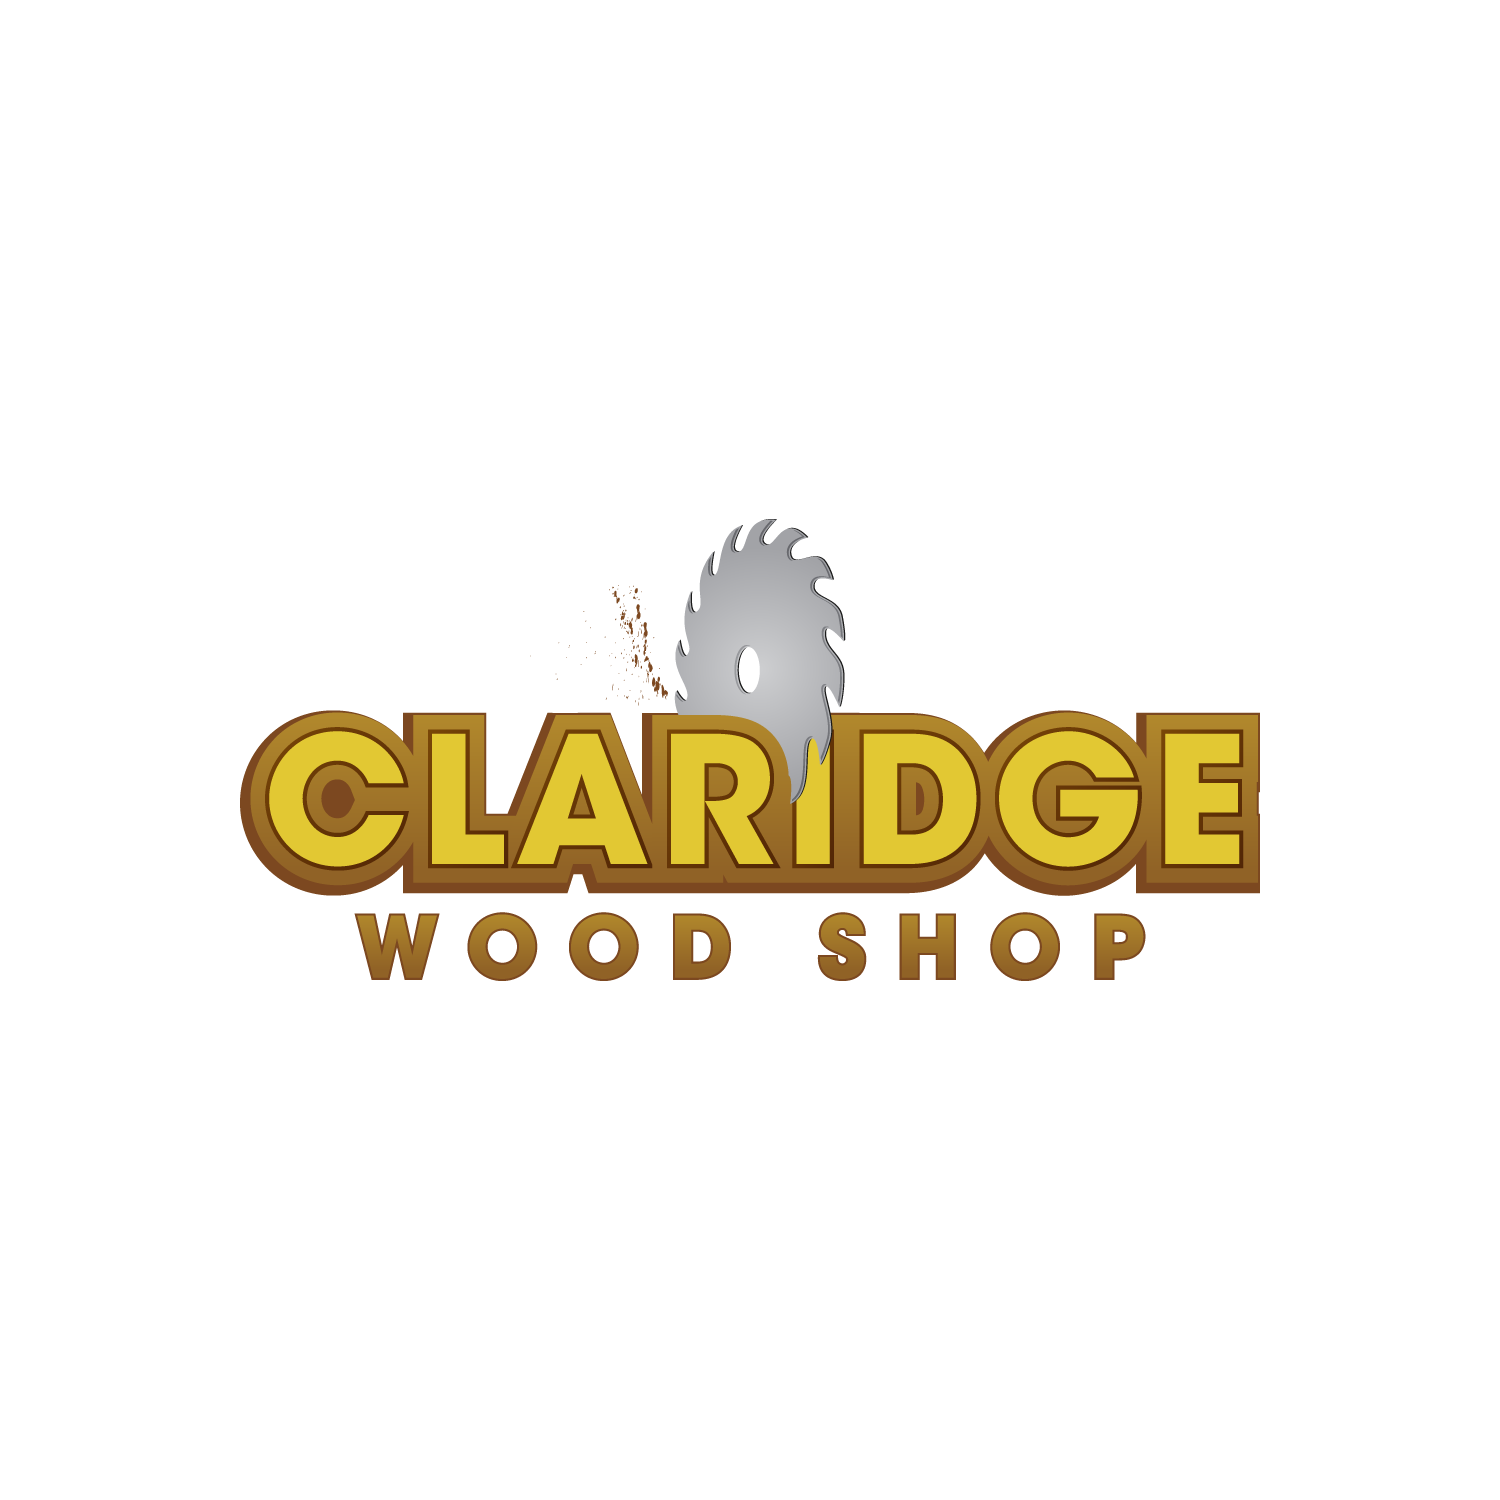 Claridge Wood Shop Photo